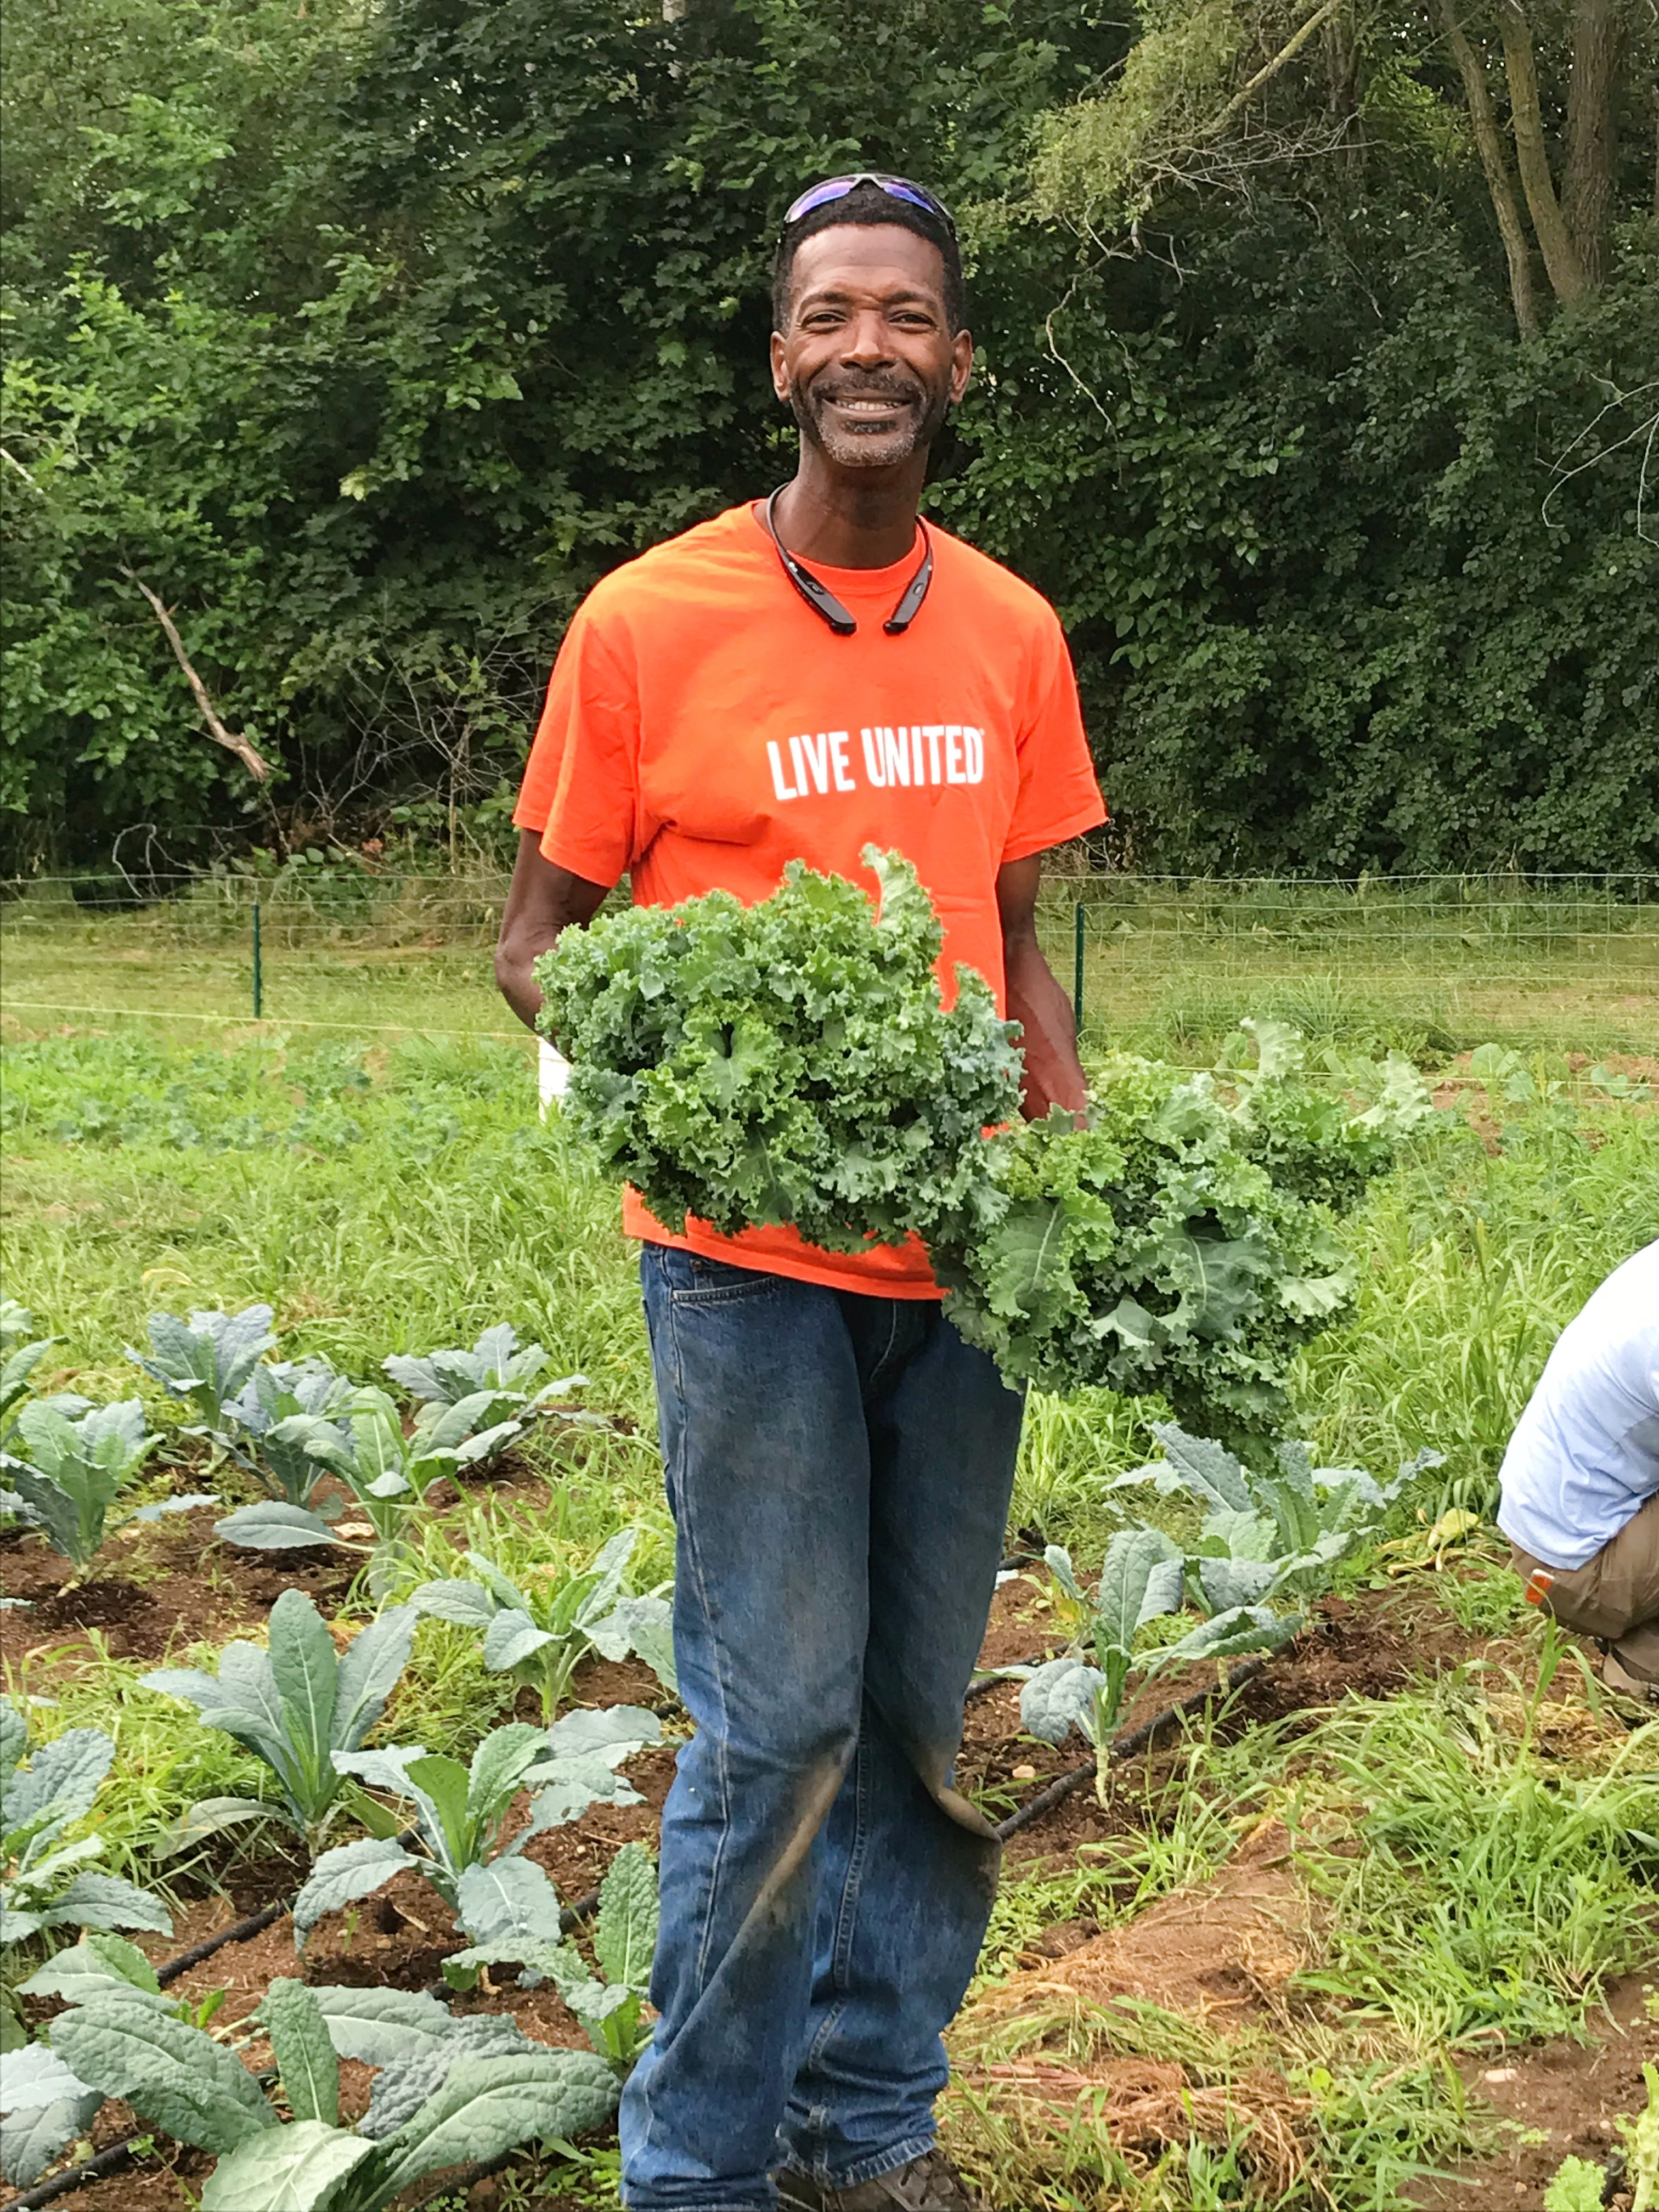 Farmer Melvin Parson holding a bunch of kale at his farm in Ypsilanti.